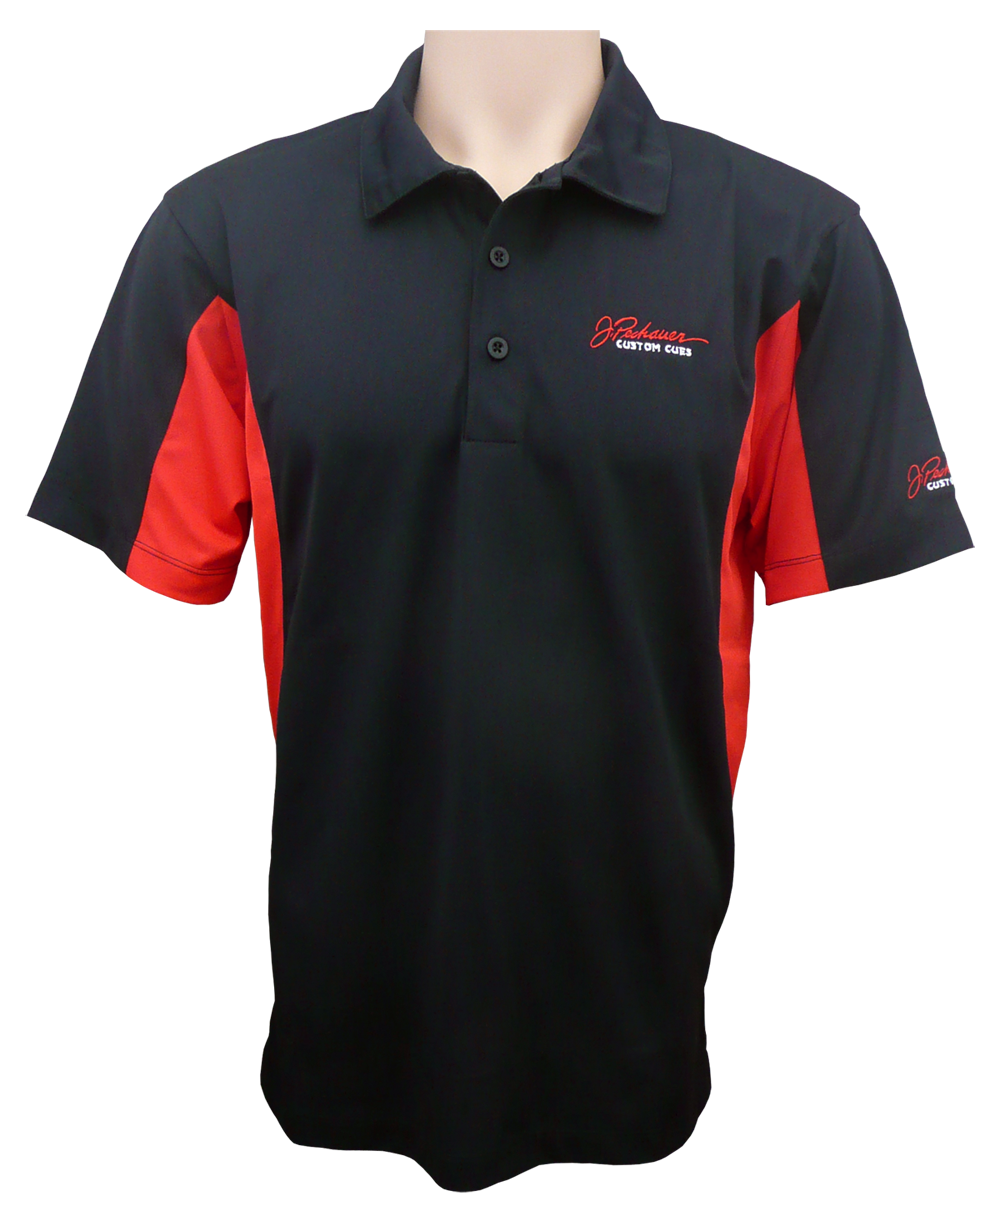 Red Black Sportek Polo Shirt Pechauer Custom Cues Quality and technical motorcycle clothing at affordable prices, we do our utmost to protect you. red black sportek polo shirt